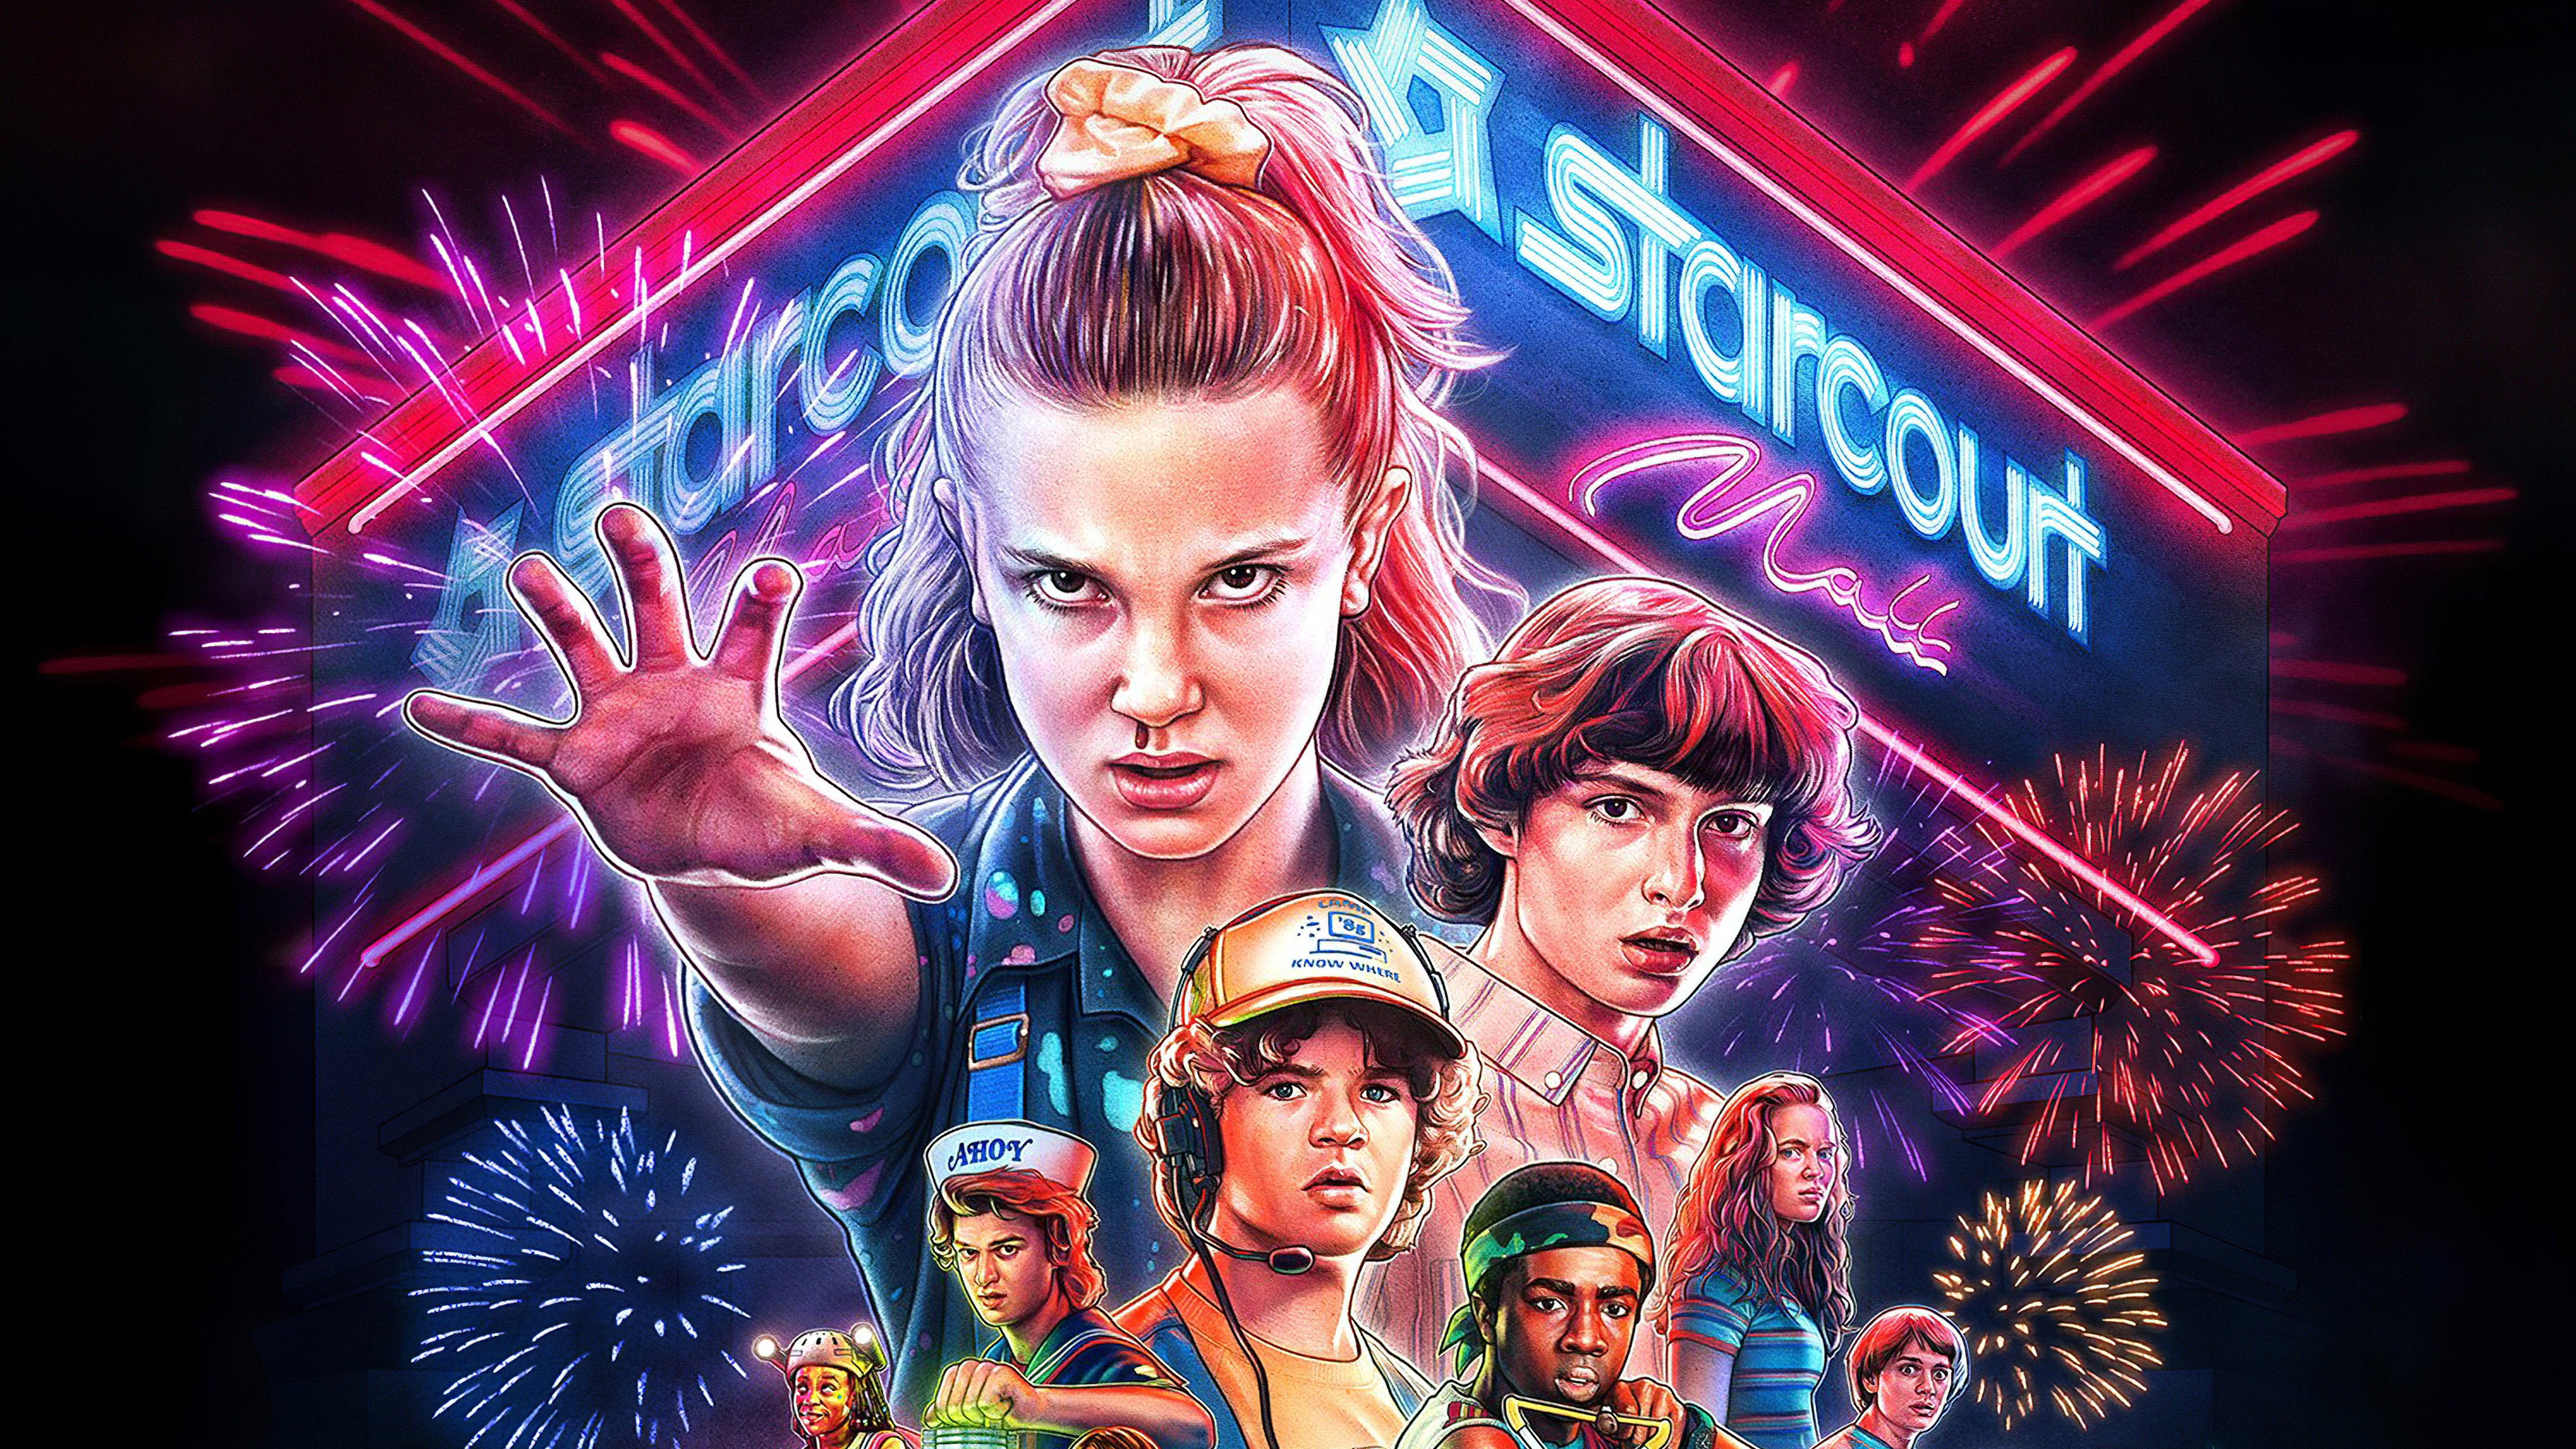 stranger-things-season-3-2019-4k-5k-38.jpg